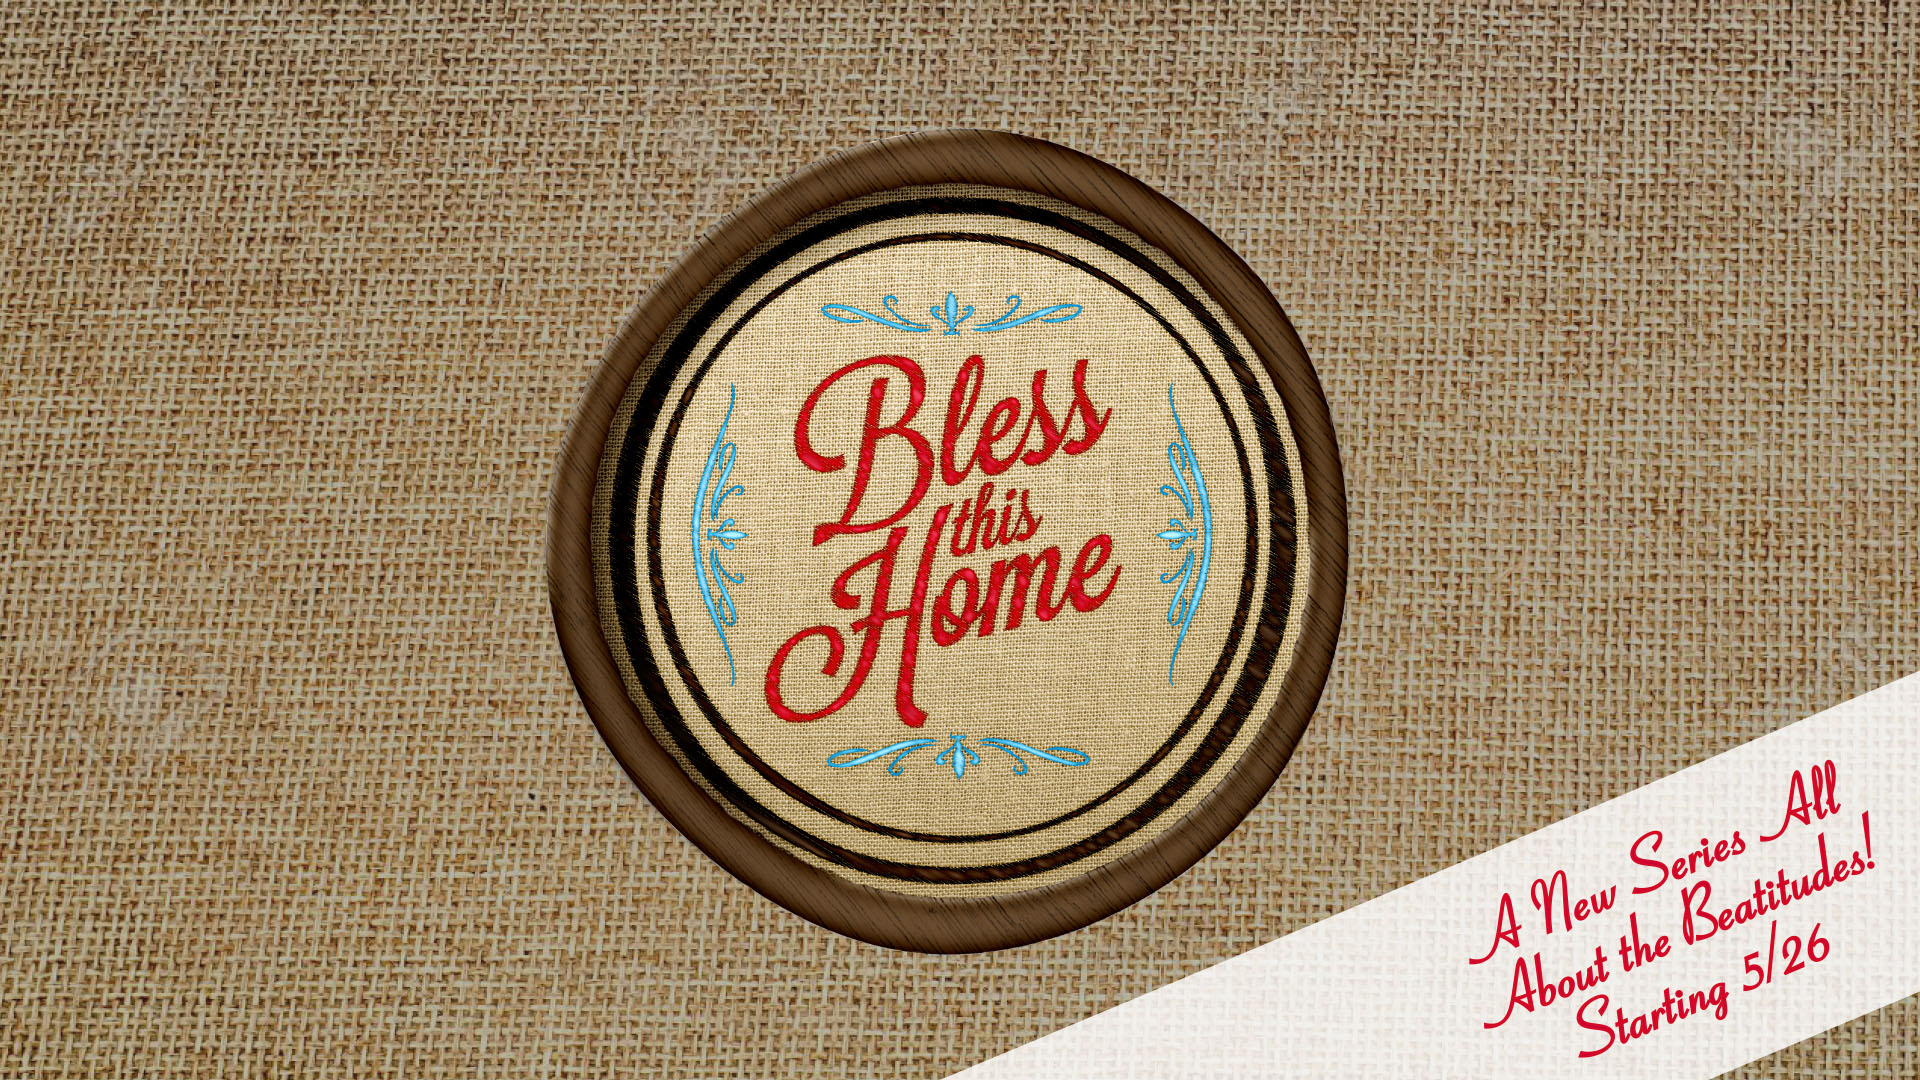 Bless this Home pt. 8: Blessed are the Persecuted